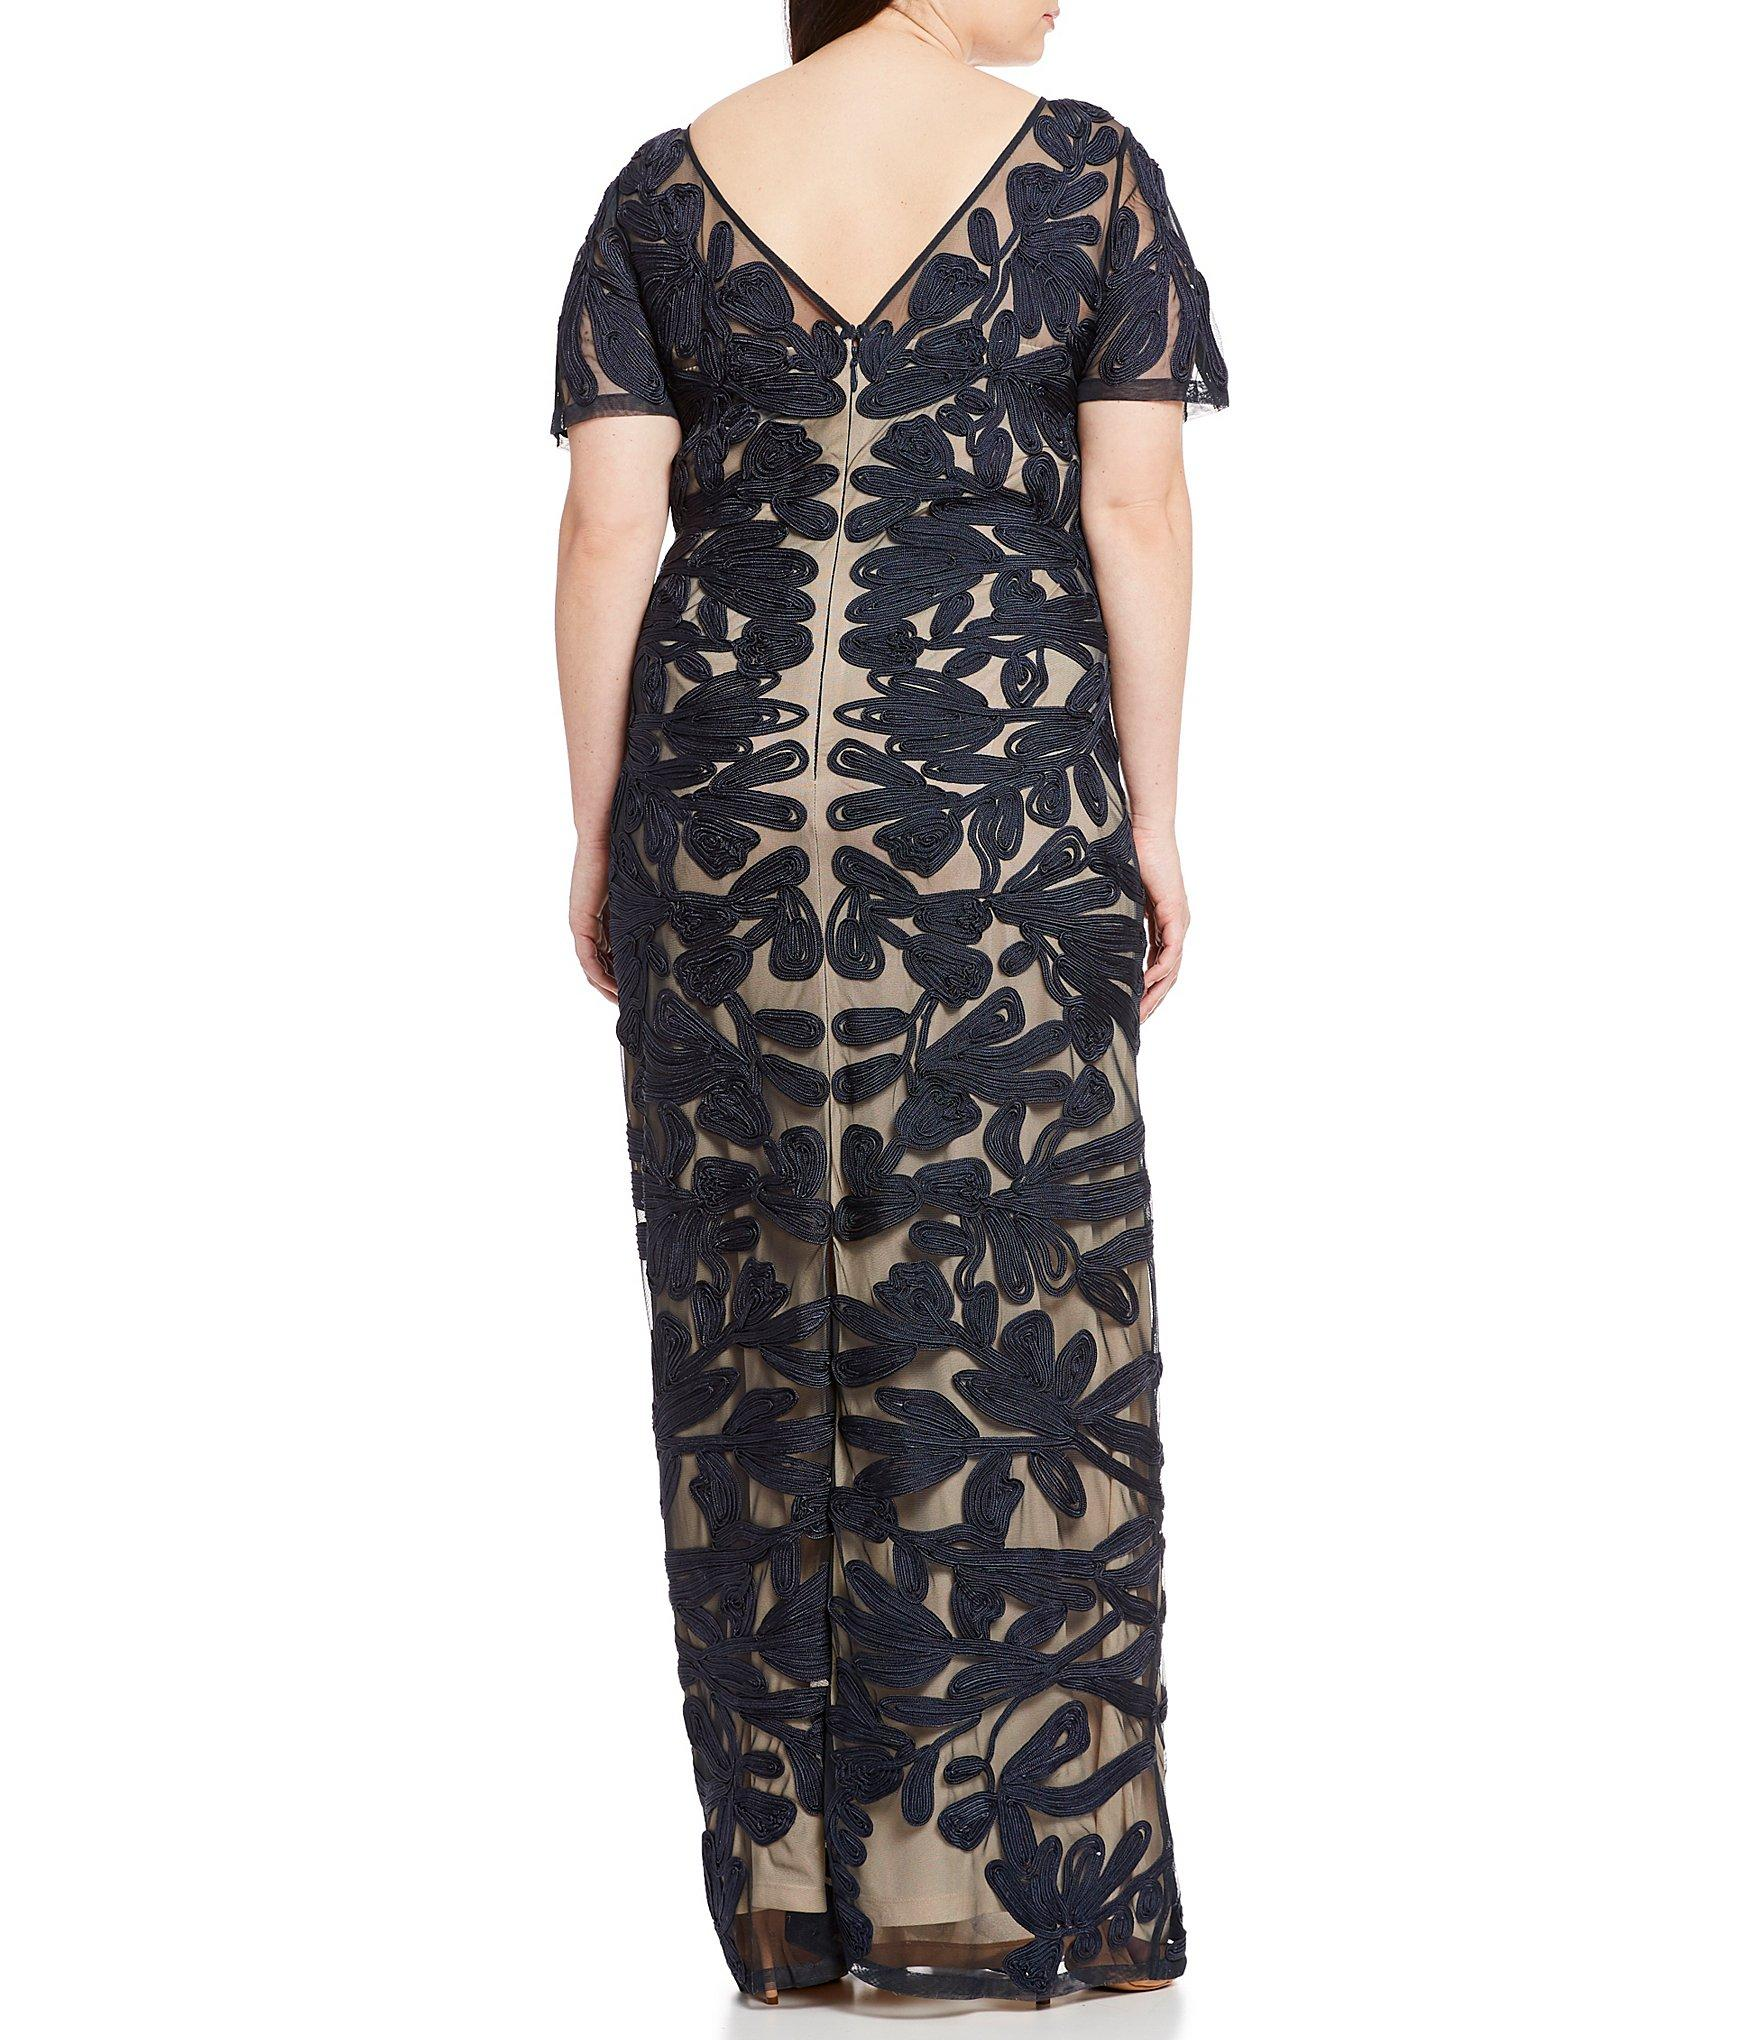 86b546a39faa5 JS Collections - Blue Plus Size Illusion Neck Short Sleeve Embroidered  Soutache Gown - Lyst. View fullscreen